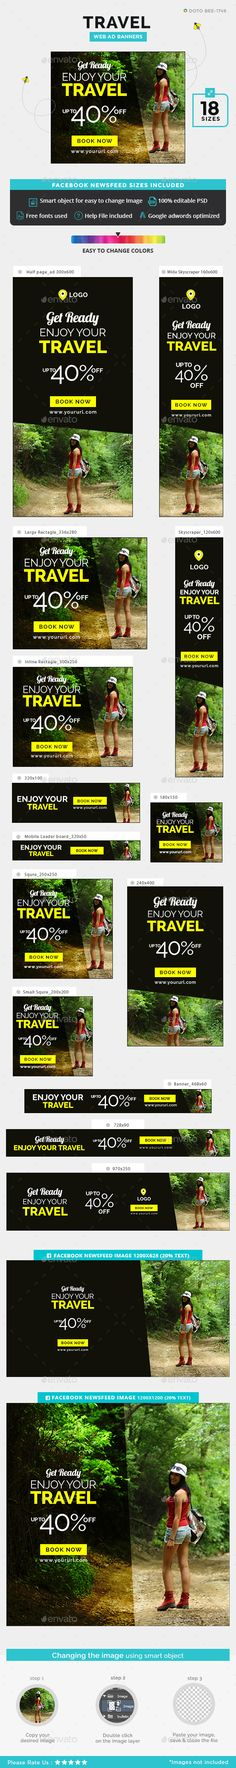 Travel Ad Banners — PSD Template #banner set #banner pack • Download ➝ https://graphicriver.net/item/travel-ad-banners/19086549?ref=pxcr